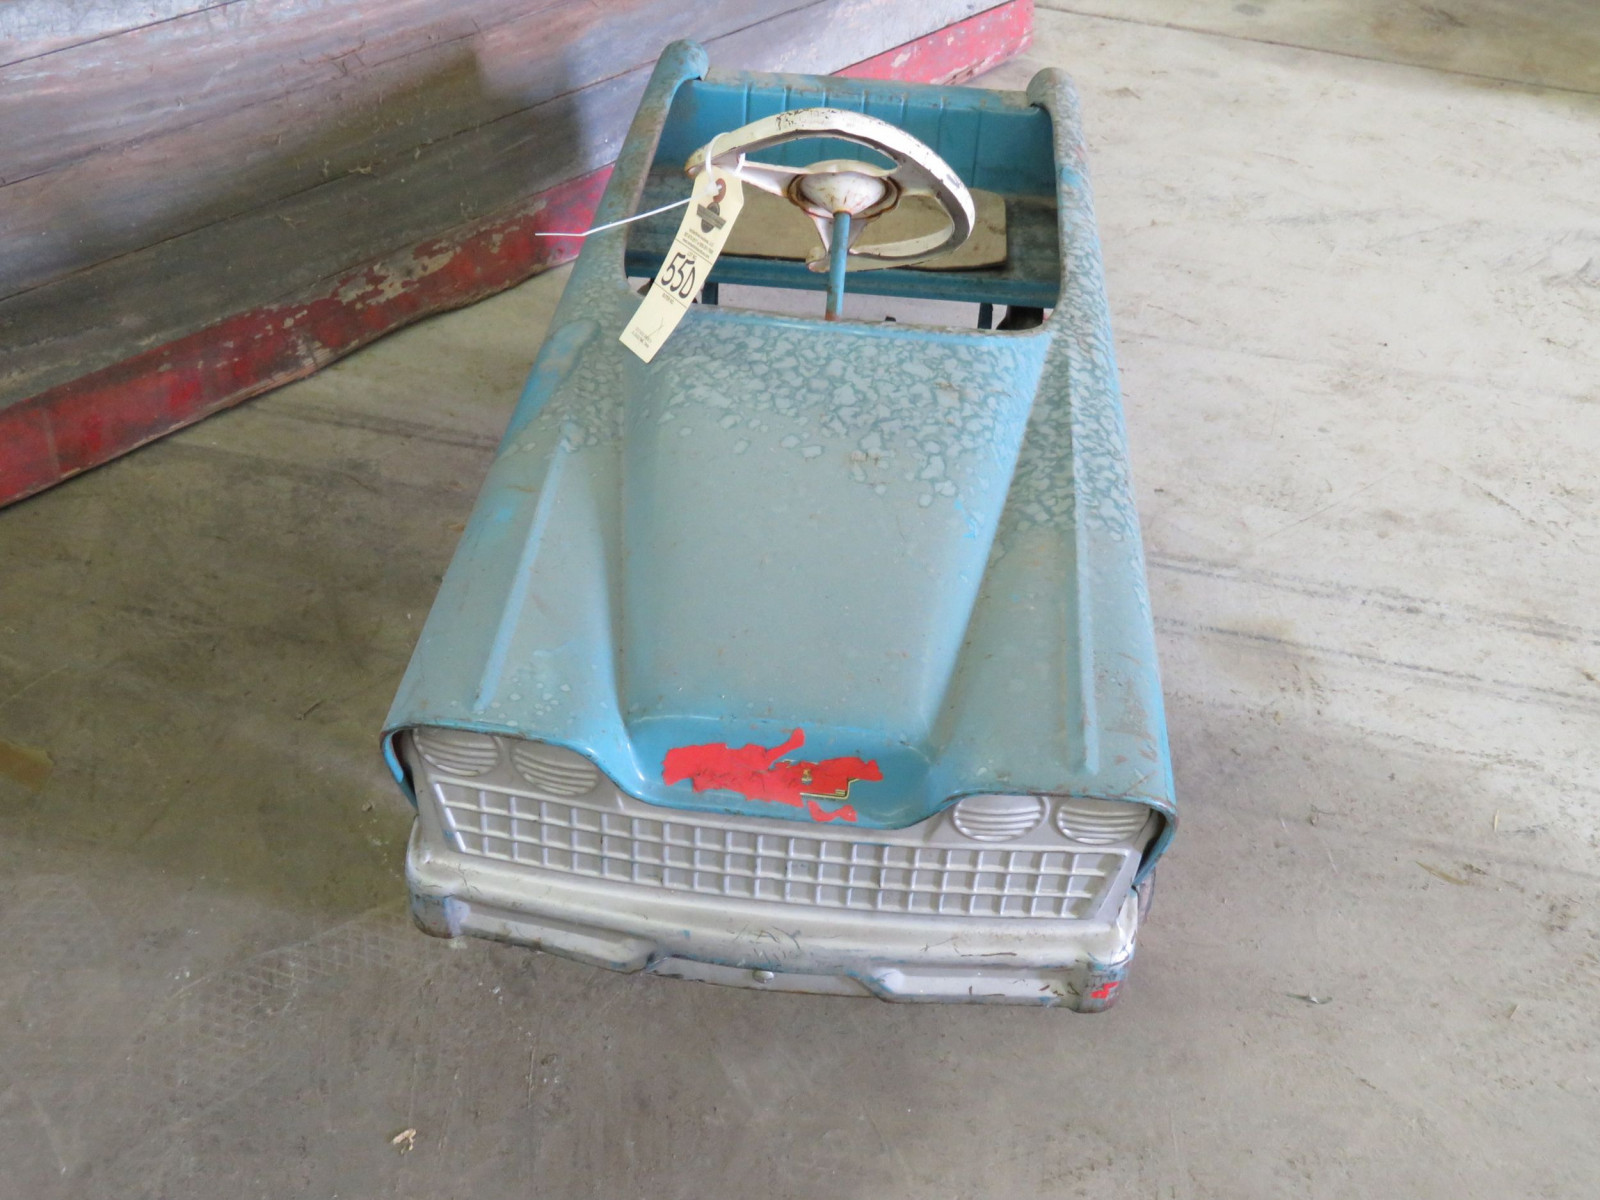 Vintage Murray Holiday Pedal Car - Image 2